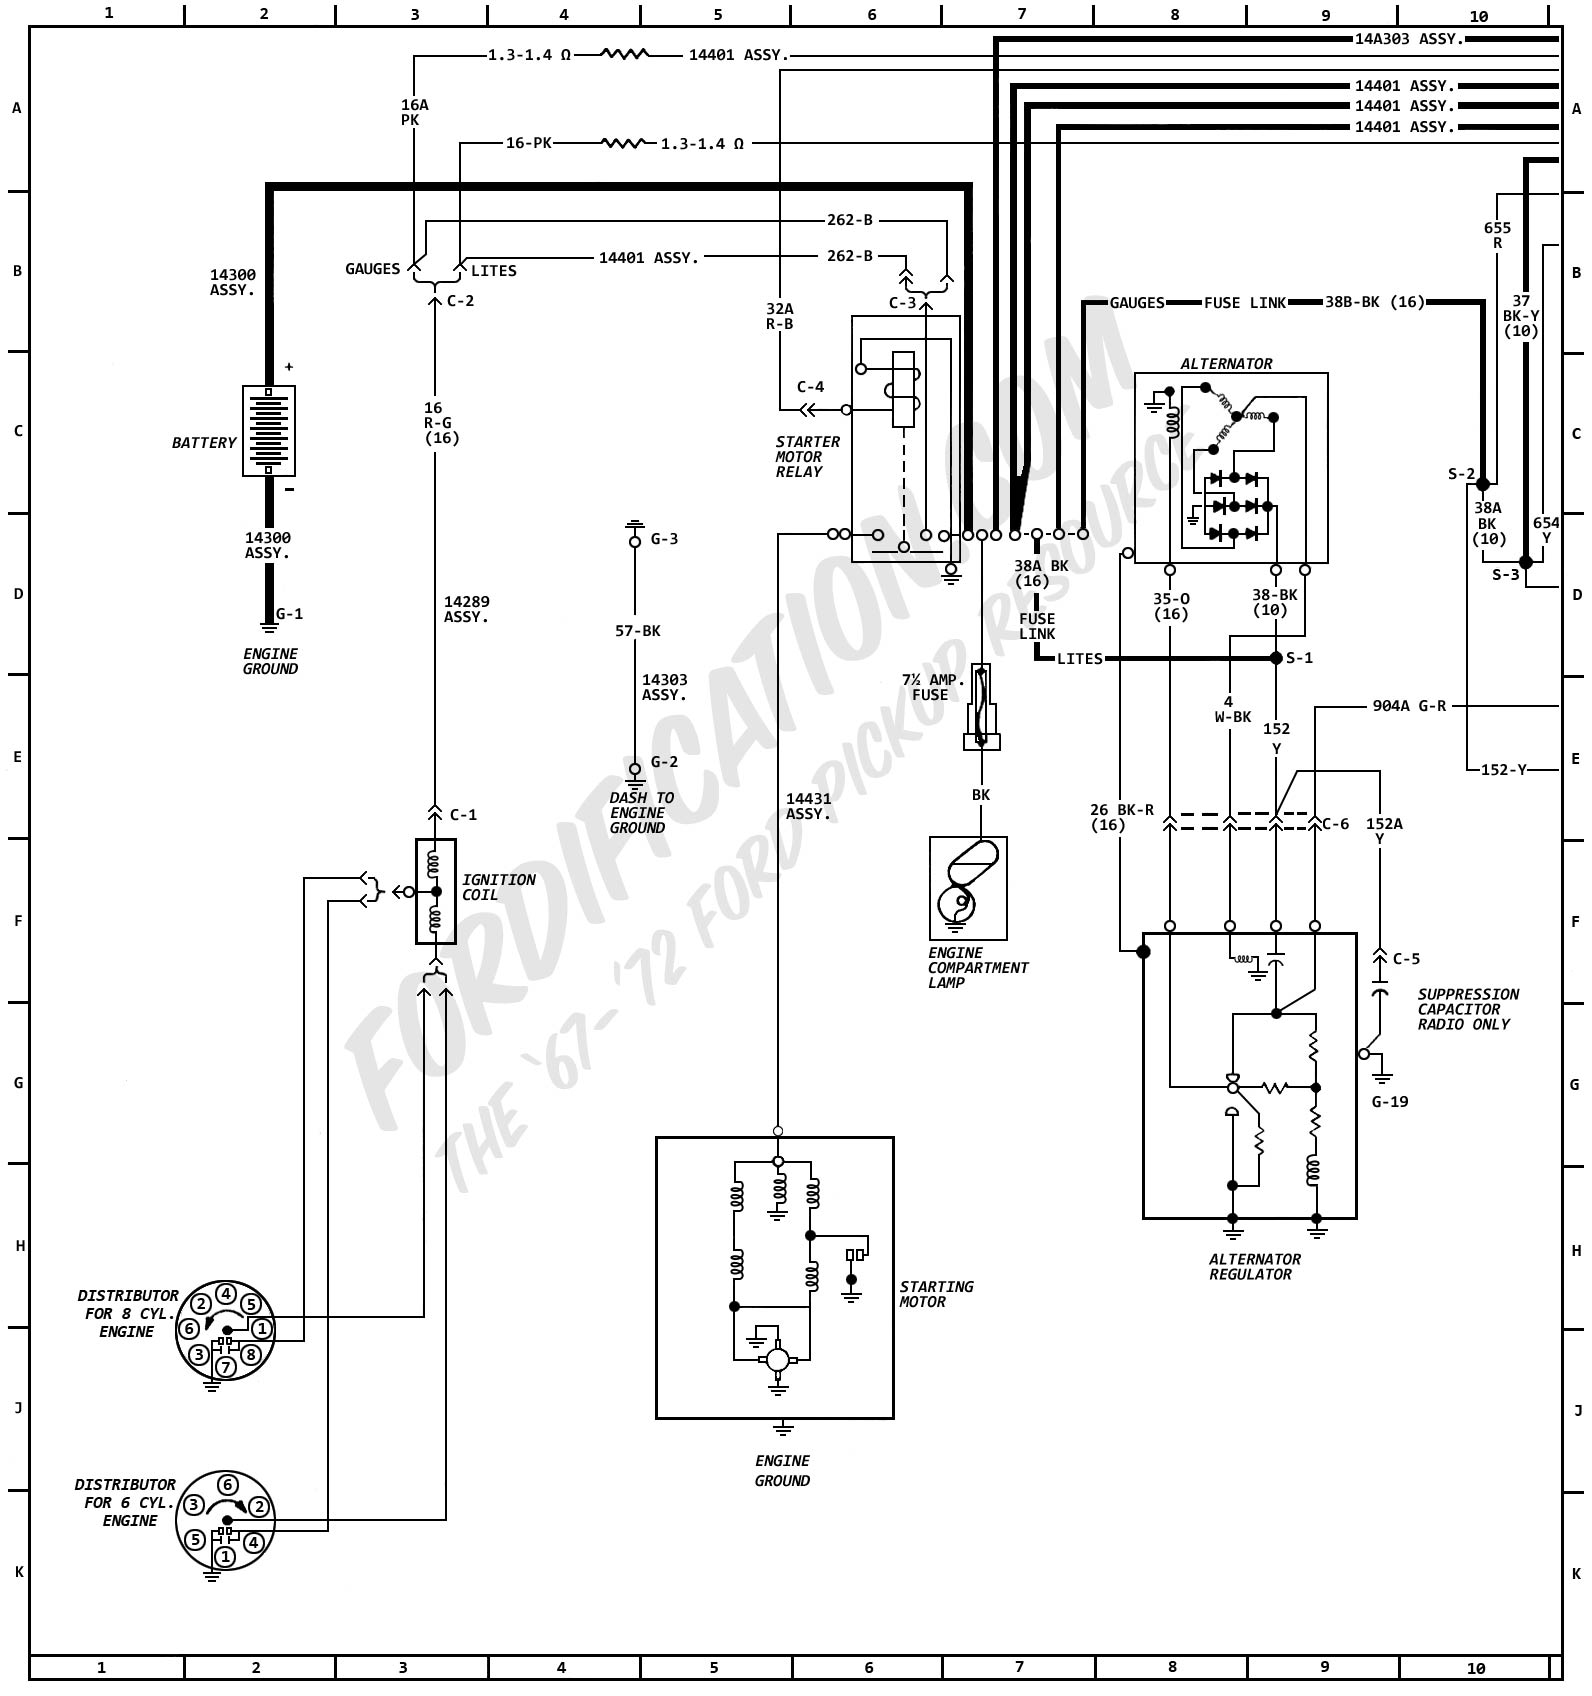 1972MasterWiring_01 1972 ford truck wiring diagrams fordification com Ford Tempo Alternator Wiring Diagram at edmiracle.co